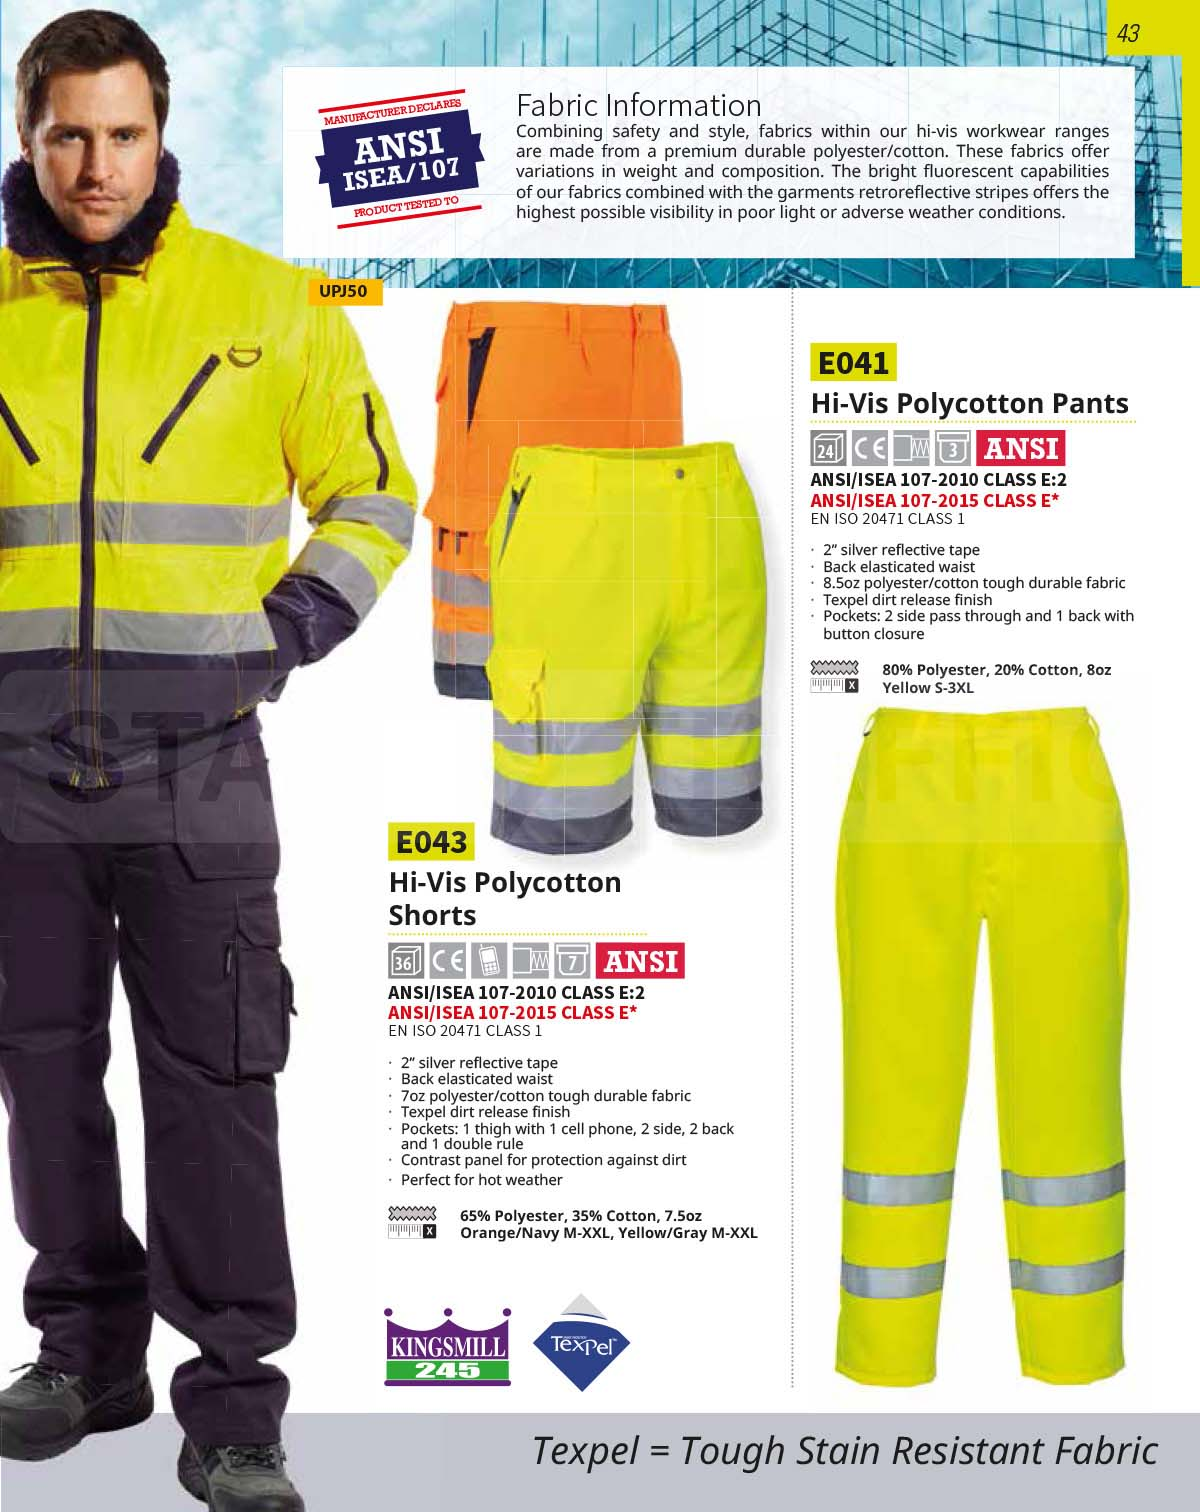 E041 Polycotton Work Pants